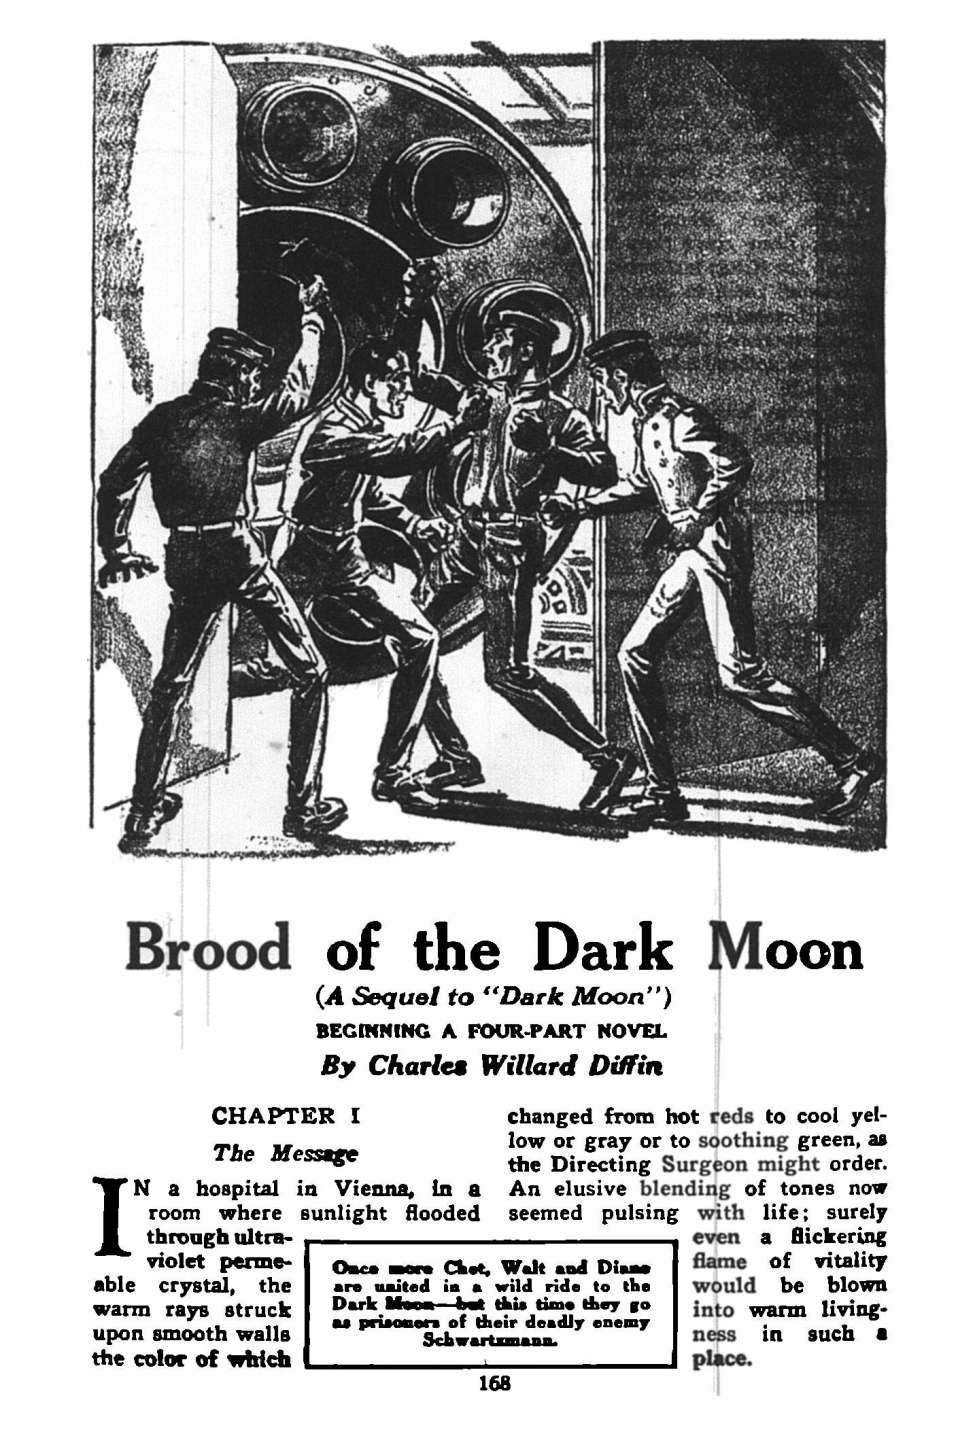 Comic Book Cover For Astounding Serial - Brood of the Dark Moon - C W Diffin